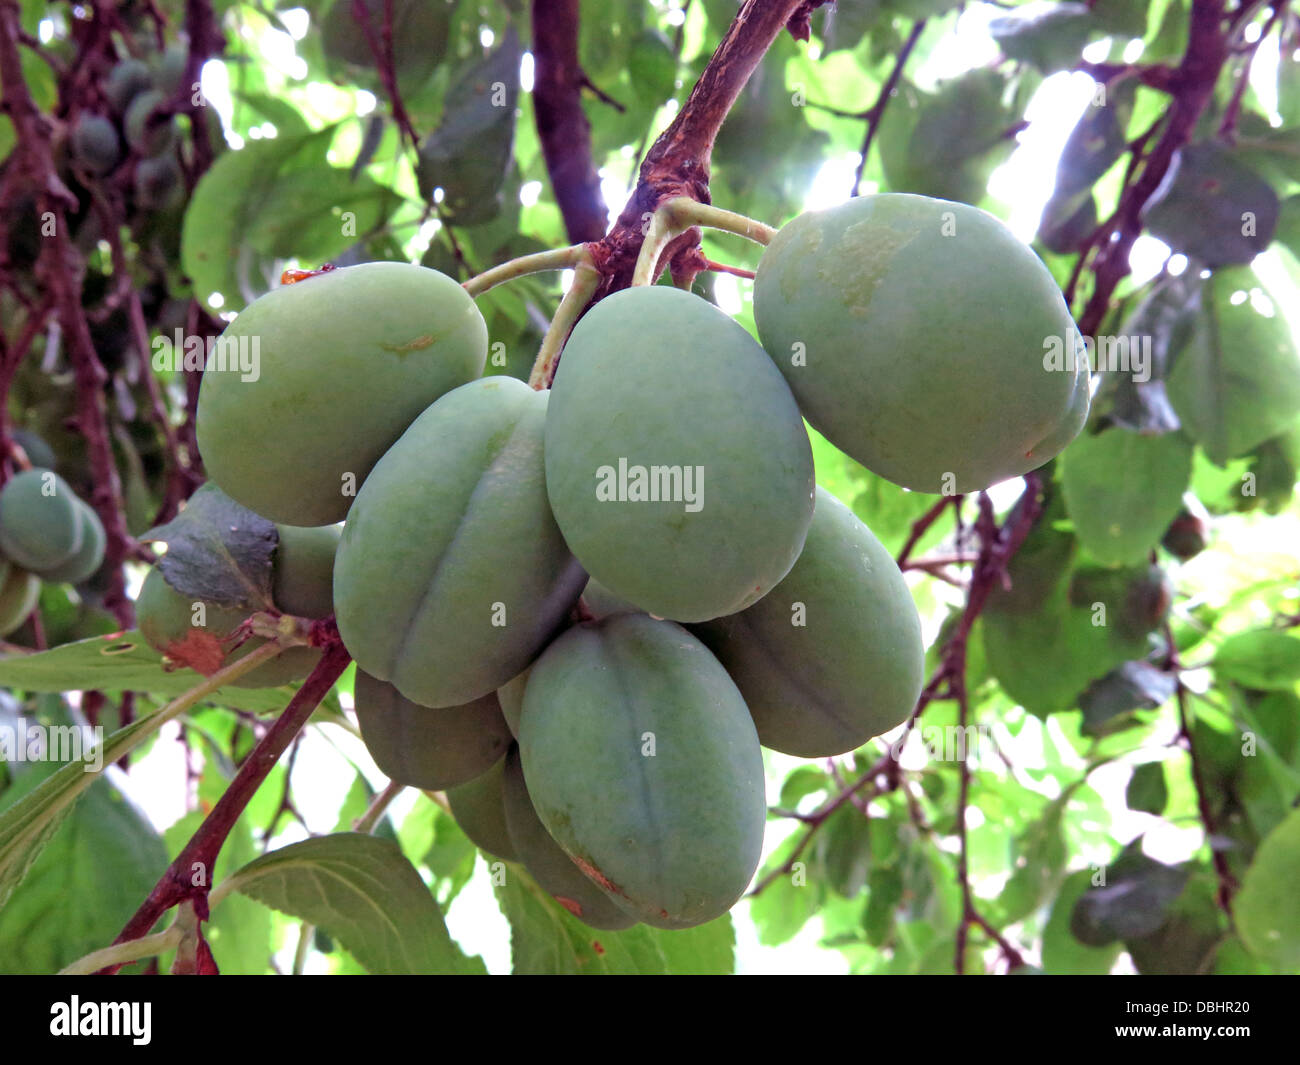 Ripe,sweet,fruit,pie,organic,eco,friendly,orchard,yard,great,Britain,GB,victoria,drupe,fruit,of,the,subgenus,Prunus,of,the,genus,Prunus,The,subgenus,is,distinguished,from,other,subgenera,in,the,shoots,having,a,terminal,bud,and,solitary,side,buds,UK,United,Kingdom,pollination,sweet,tart,Gotonysmith,@hotpixuk,hotpixuk,five,a,day,5,5aday,fruit,Buy Pictures of,Buy Images Of,Low Fat Diet,Five A Day